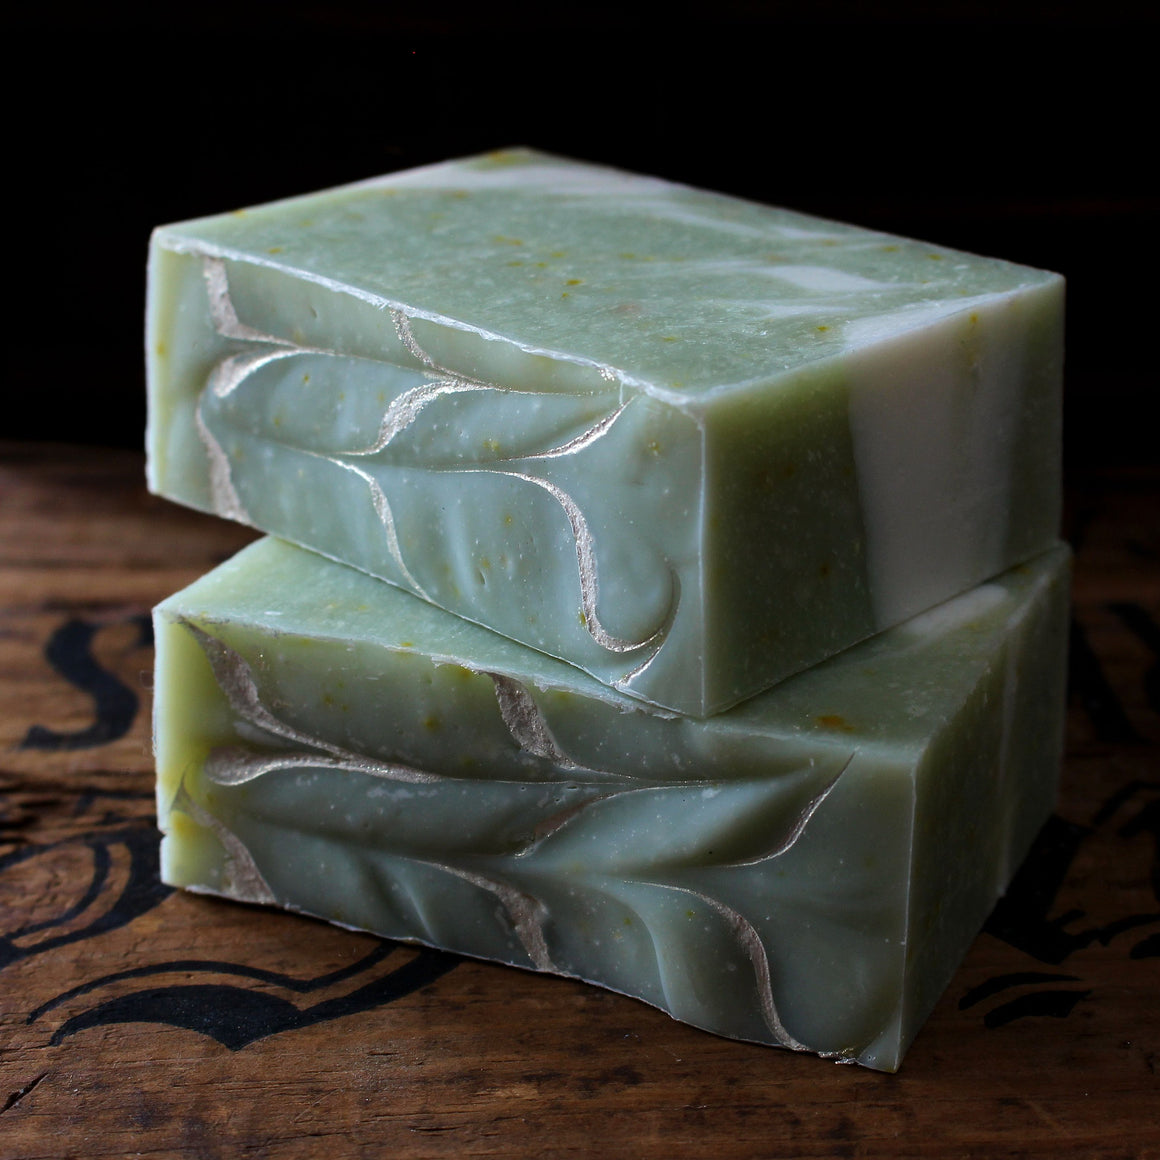 Cucumber Tonic Cold Process Soap